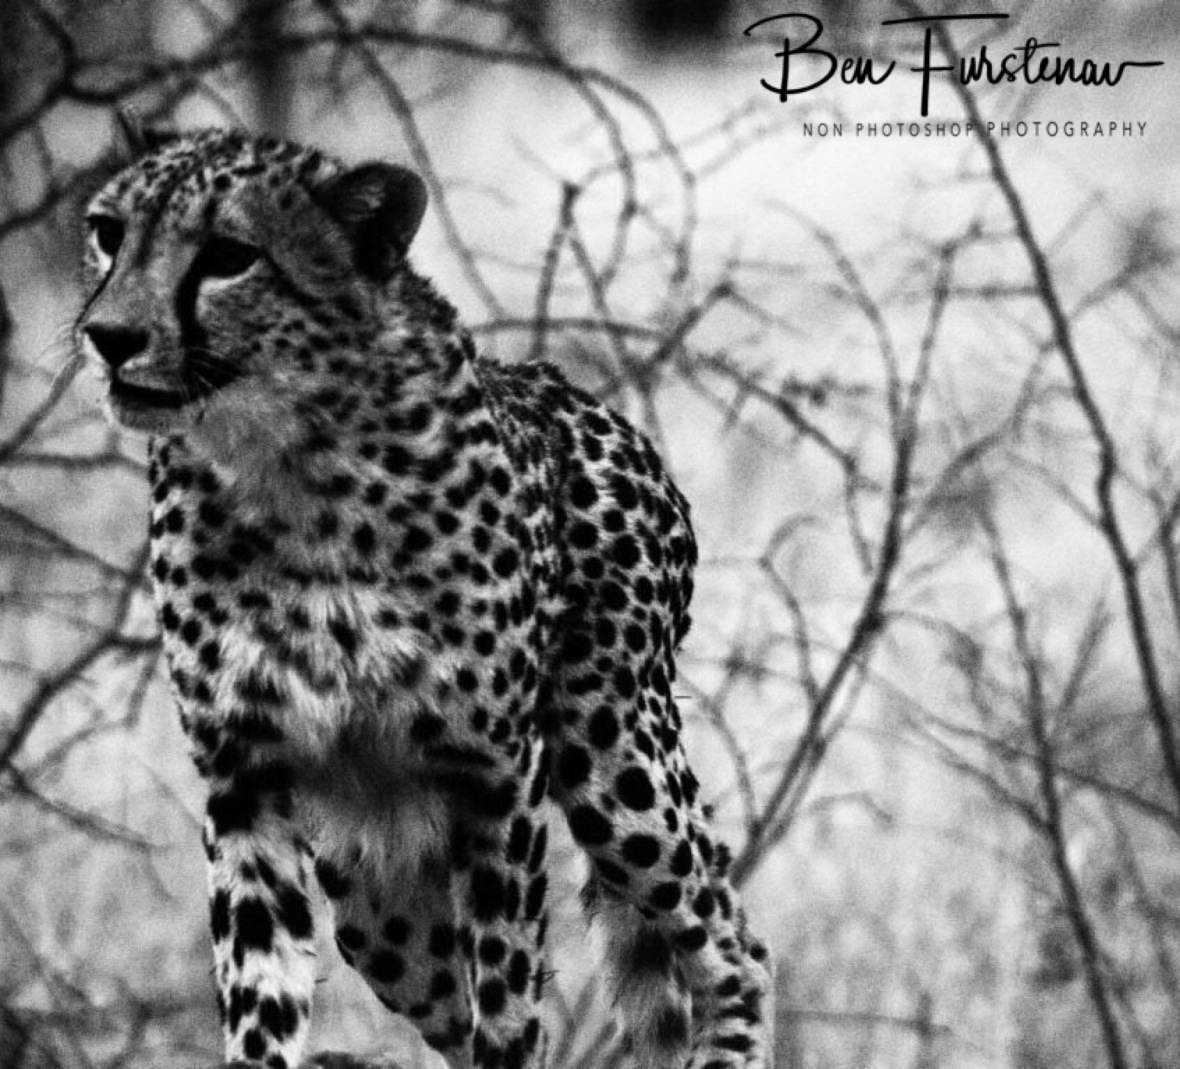 On the prowl, Sophienhof, Outjo, Namibia